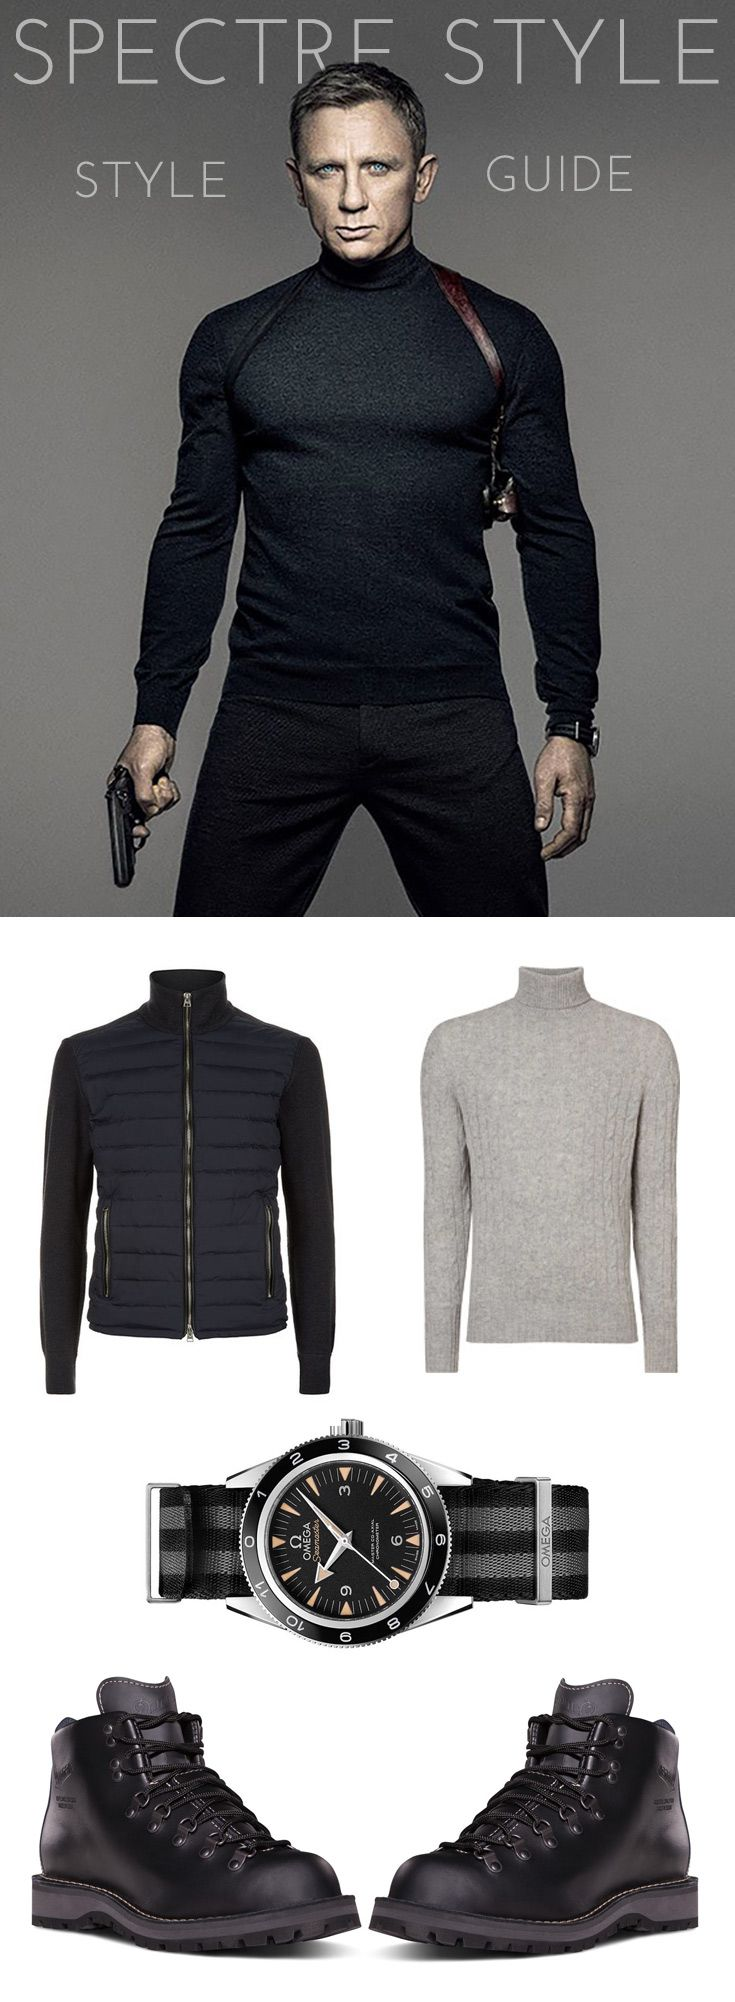 The ultimate guide to shopping the looks from Spectre, the latest Bond film.  James Bond Spectre watch and clothes from the movie.